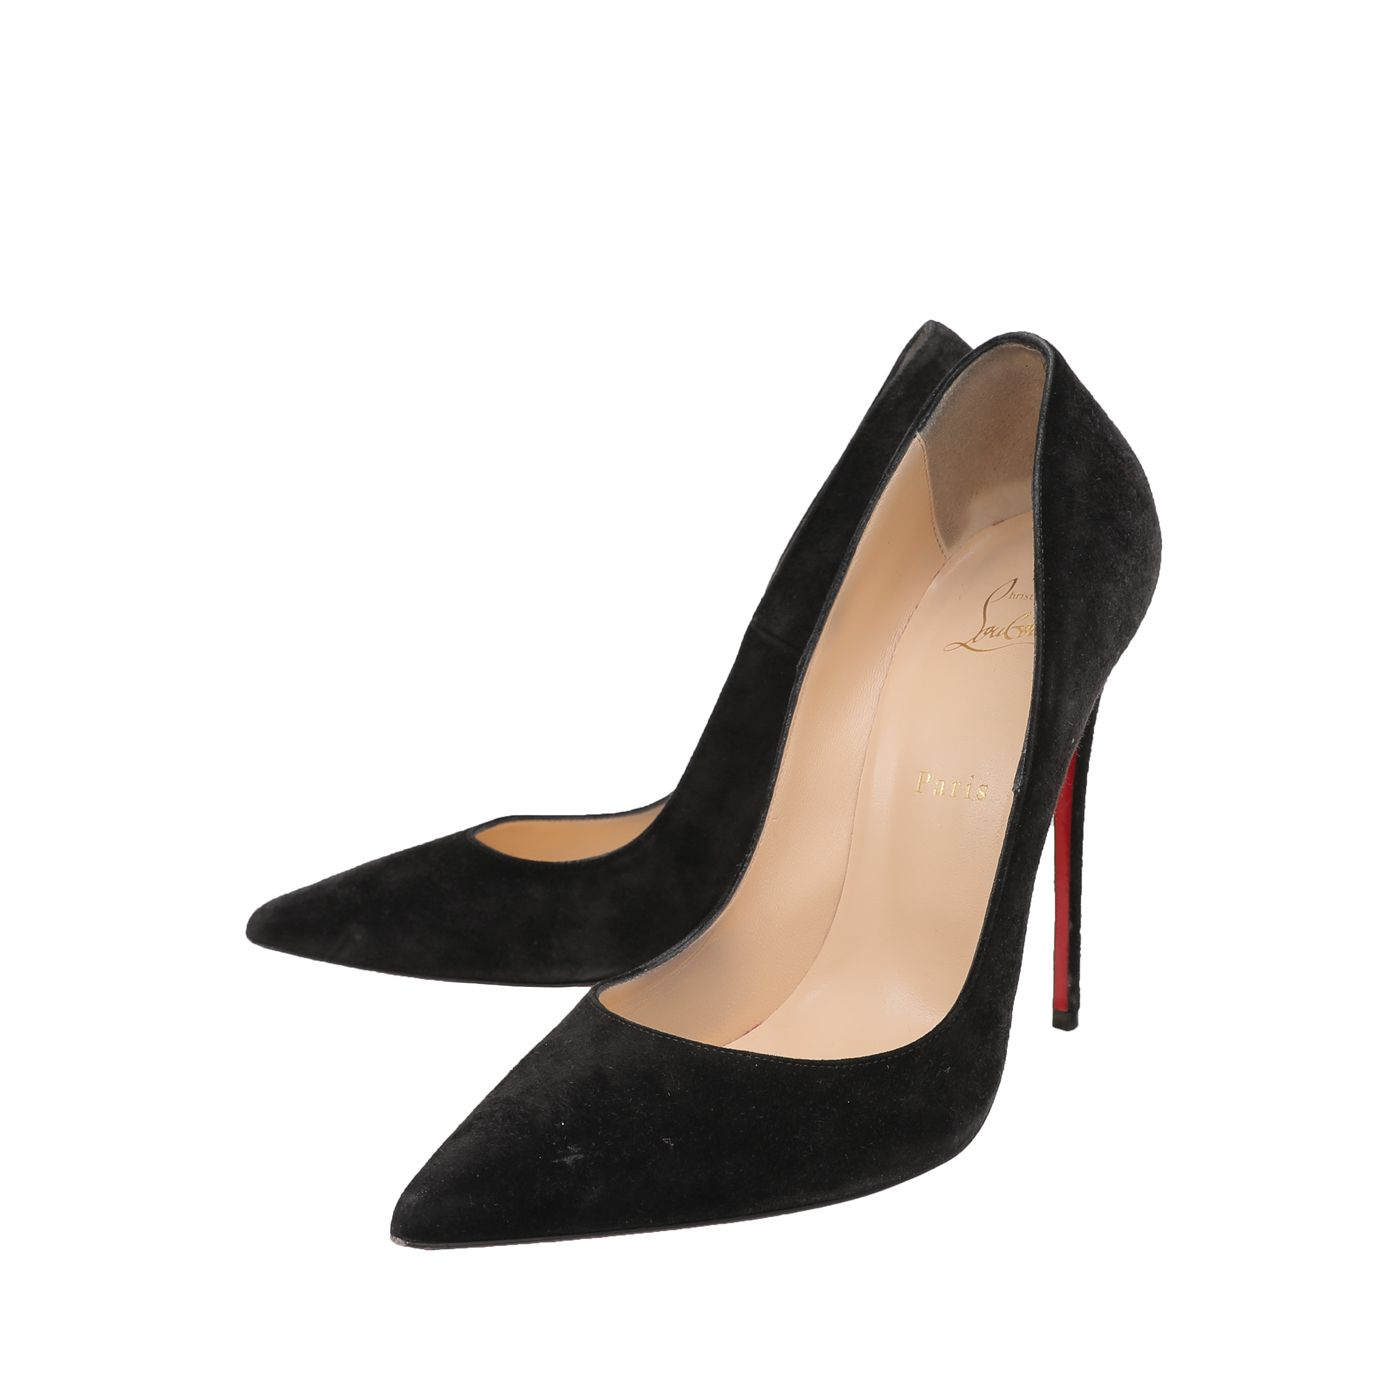 Christian Louboutin Black Suede So Kate 120mm Pumps 41.5